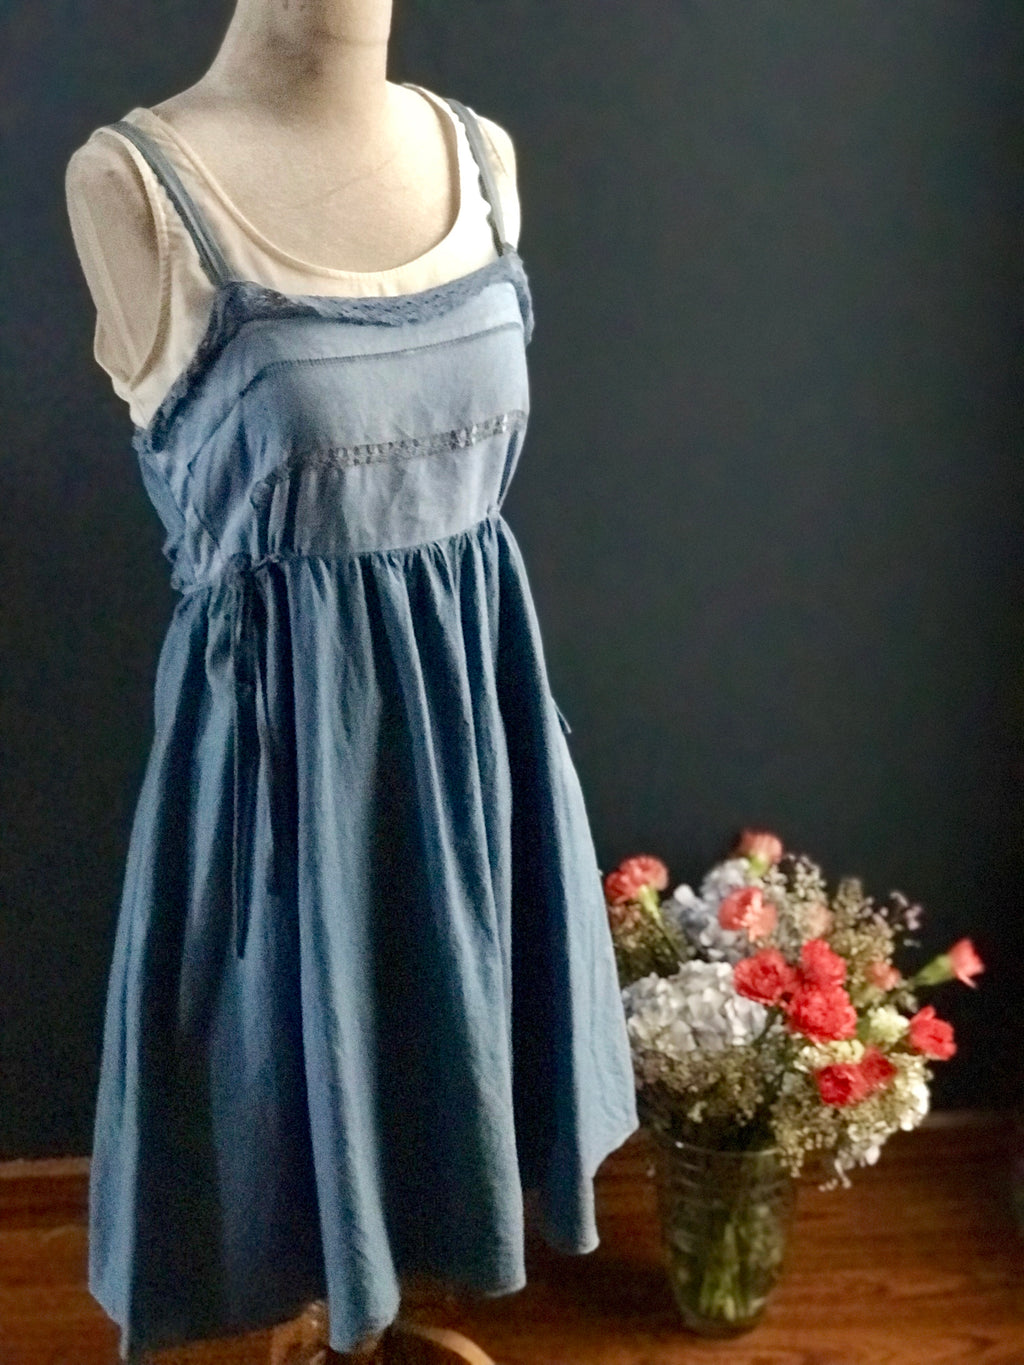 Indigo dyed Pinafore Dress